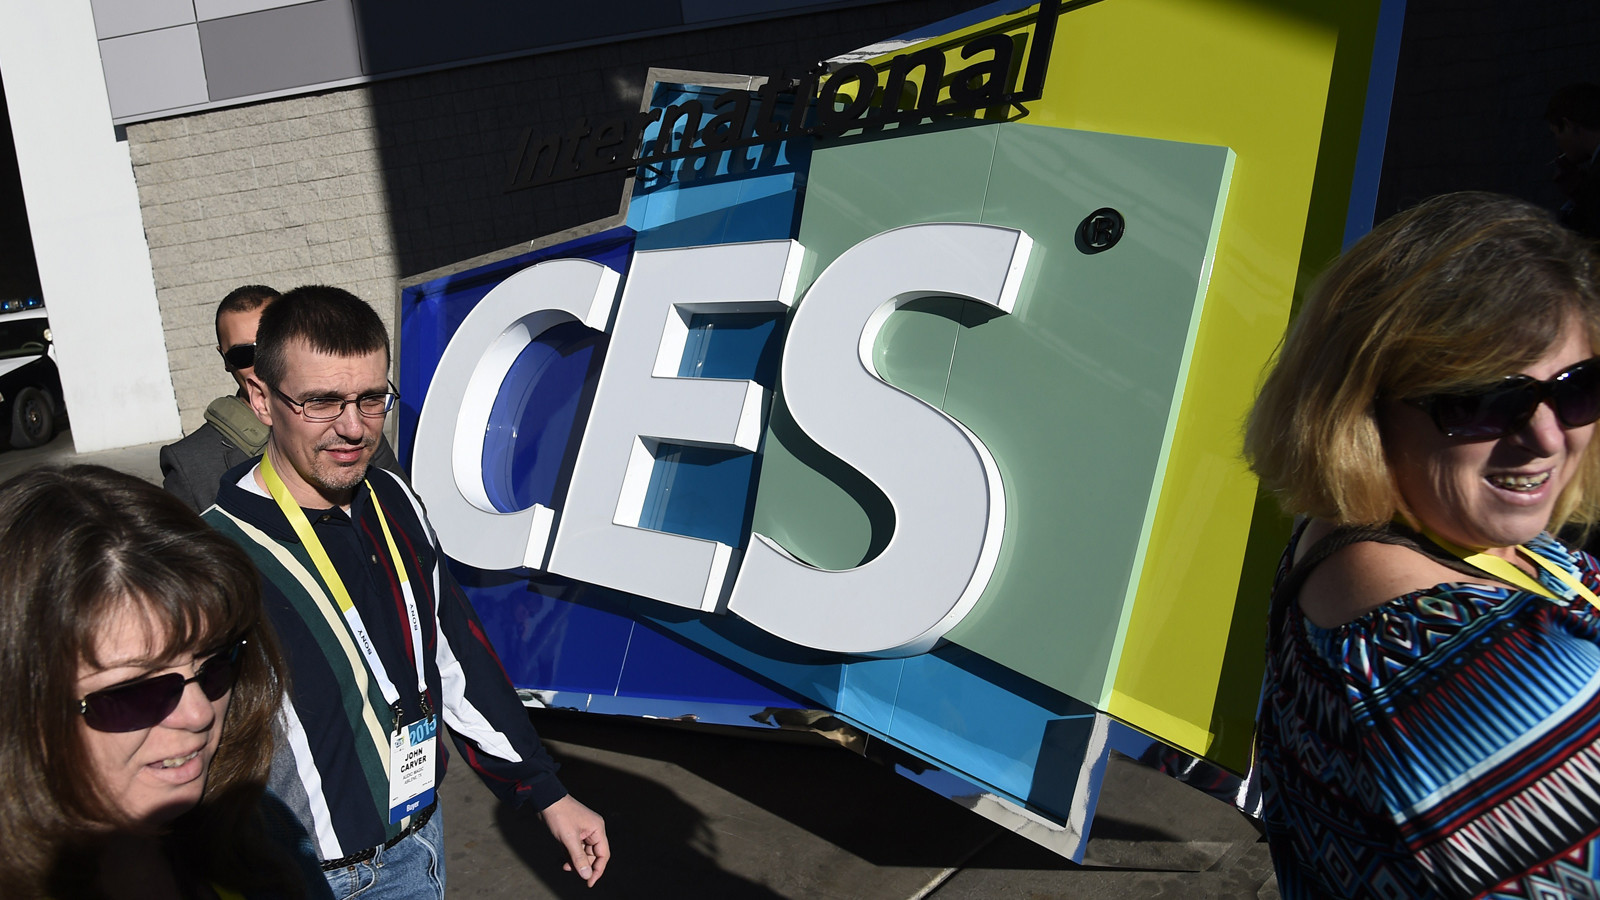 CES increases security, bans rollerbags for 2016 electronics show